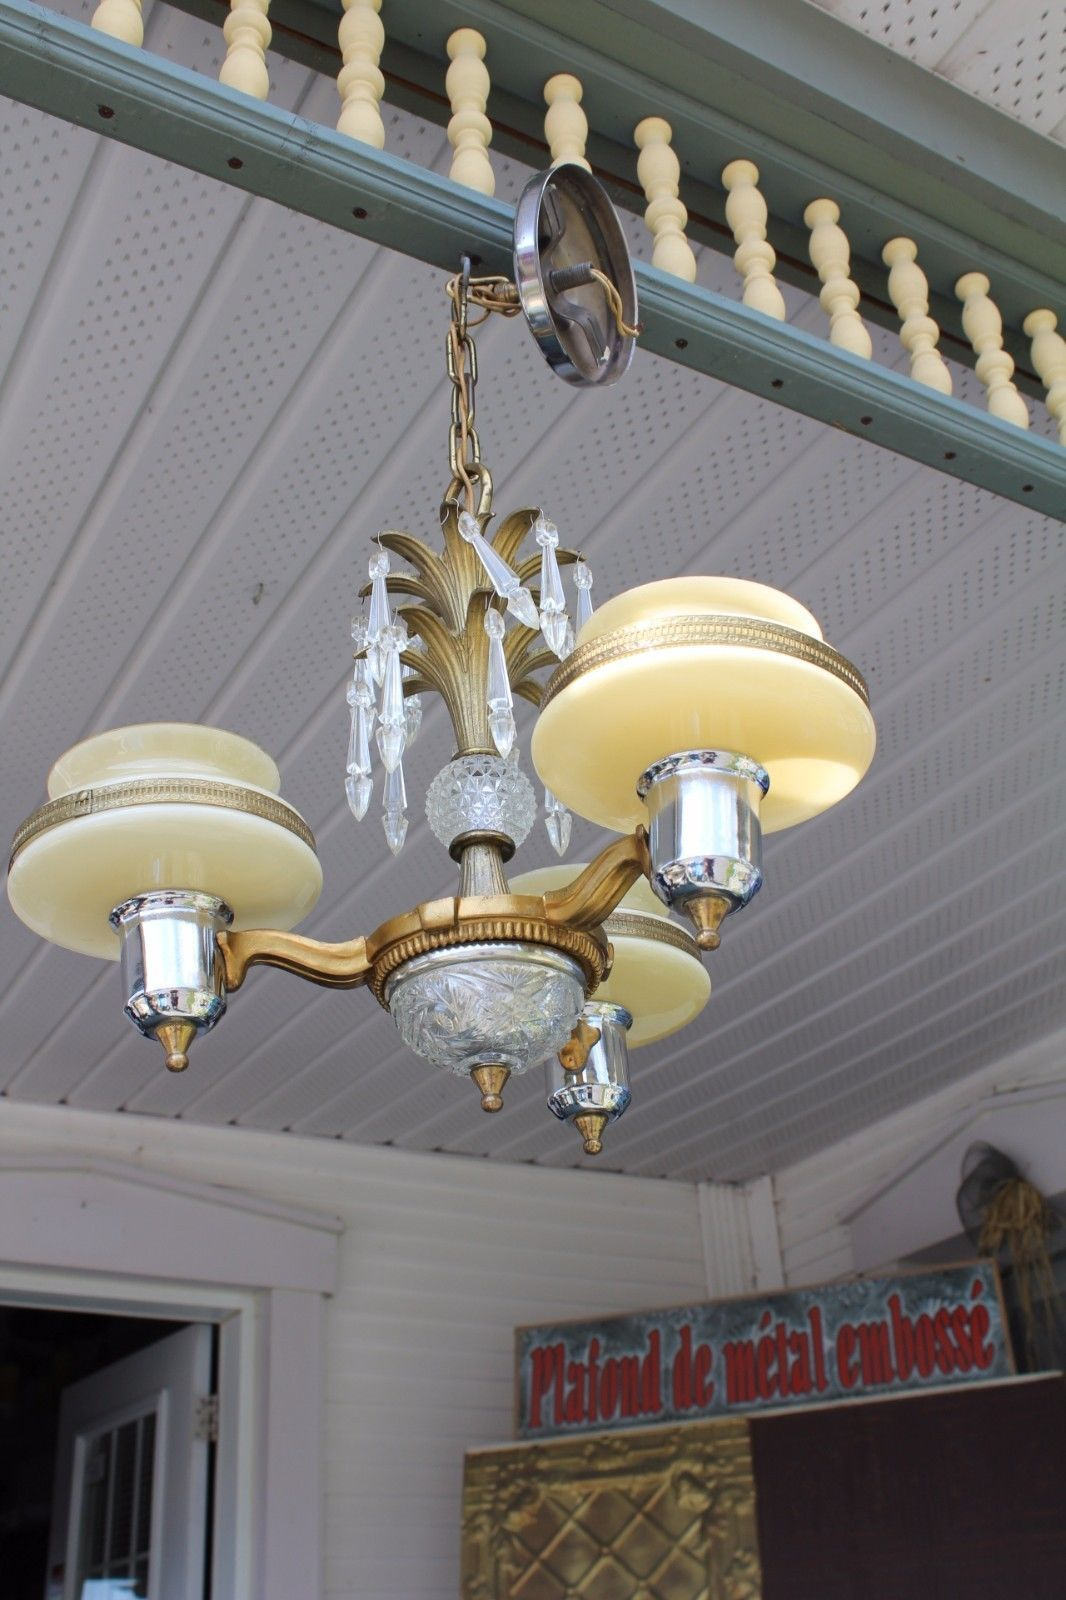 Antique art deco ceiling chandelier with custard glass slip shade antique art deco ceiling chandelier with custard glass slip shade vintage arubaitofo Gallery